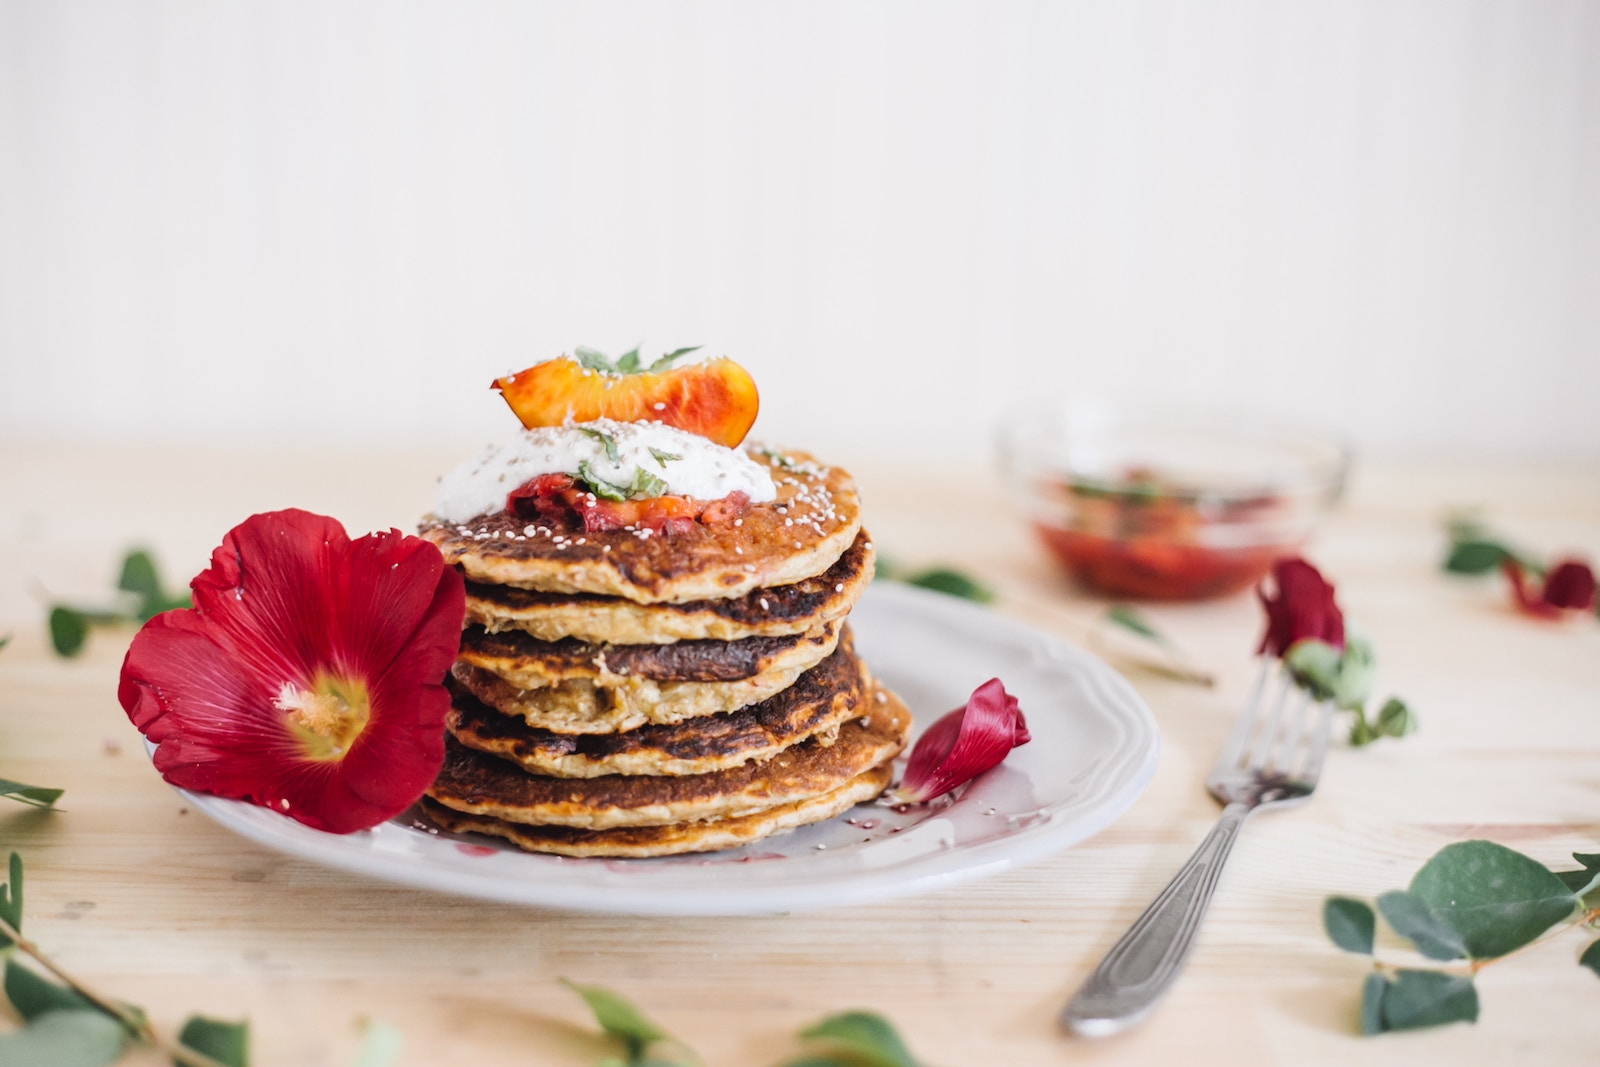 Protein Pancakes Grundrezept - Photo by Sen Po on Unsplash